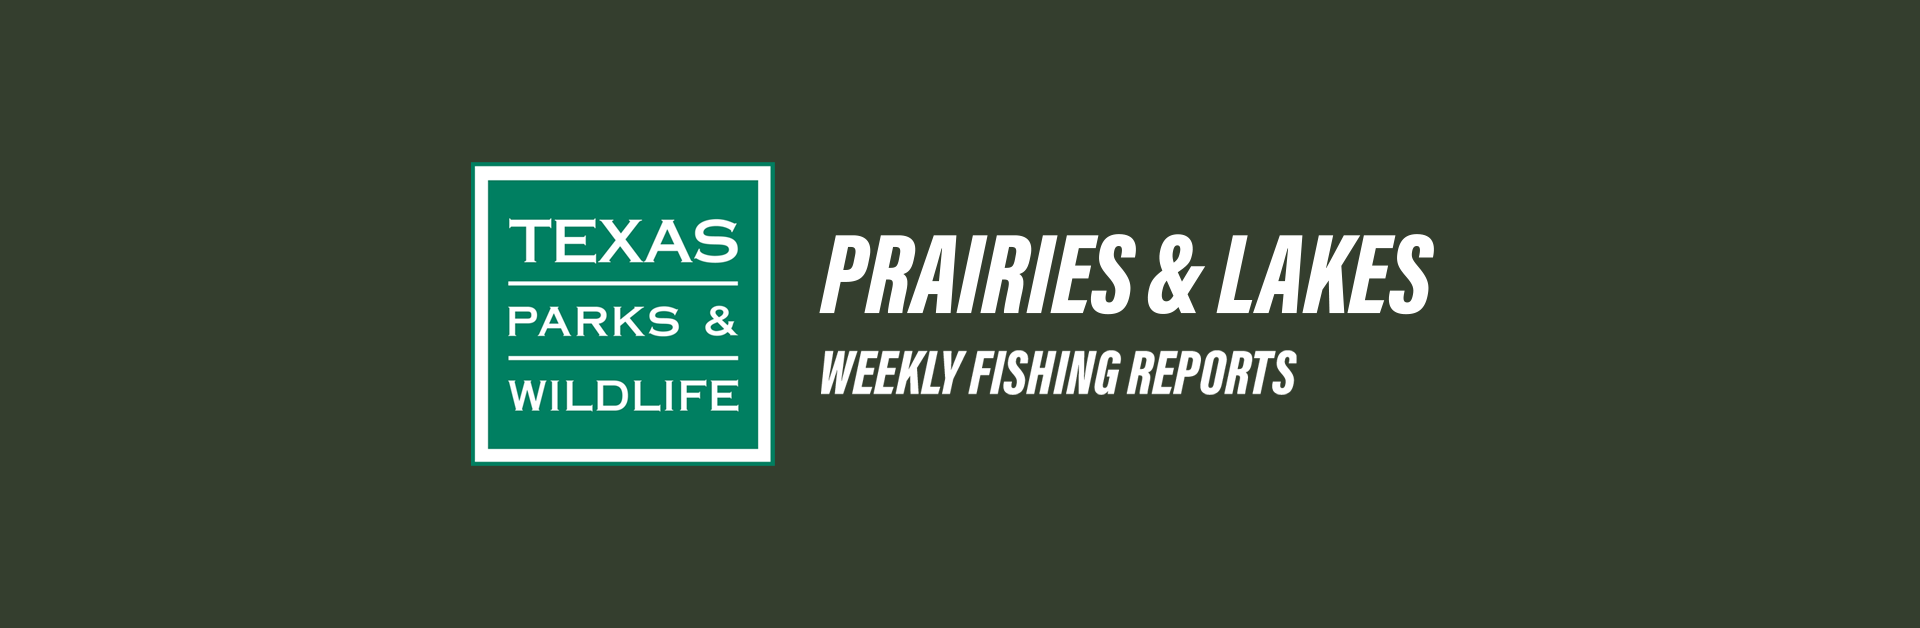 Prairies & Lakes | WEEK OF 12/4/19